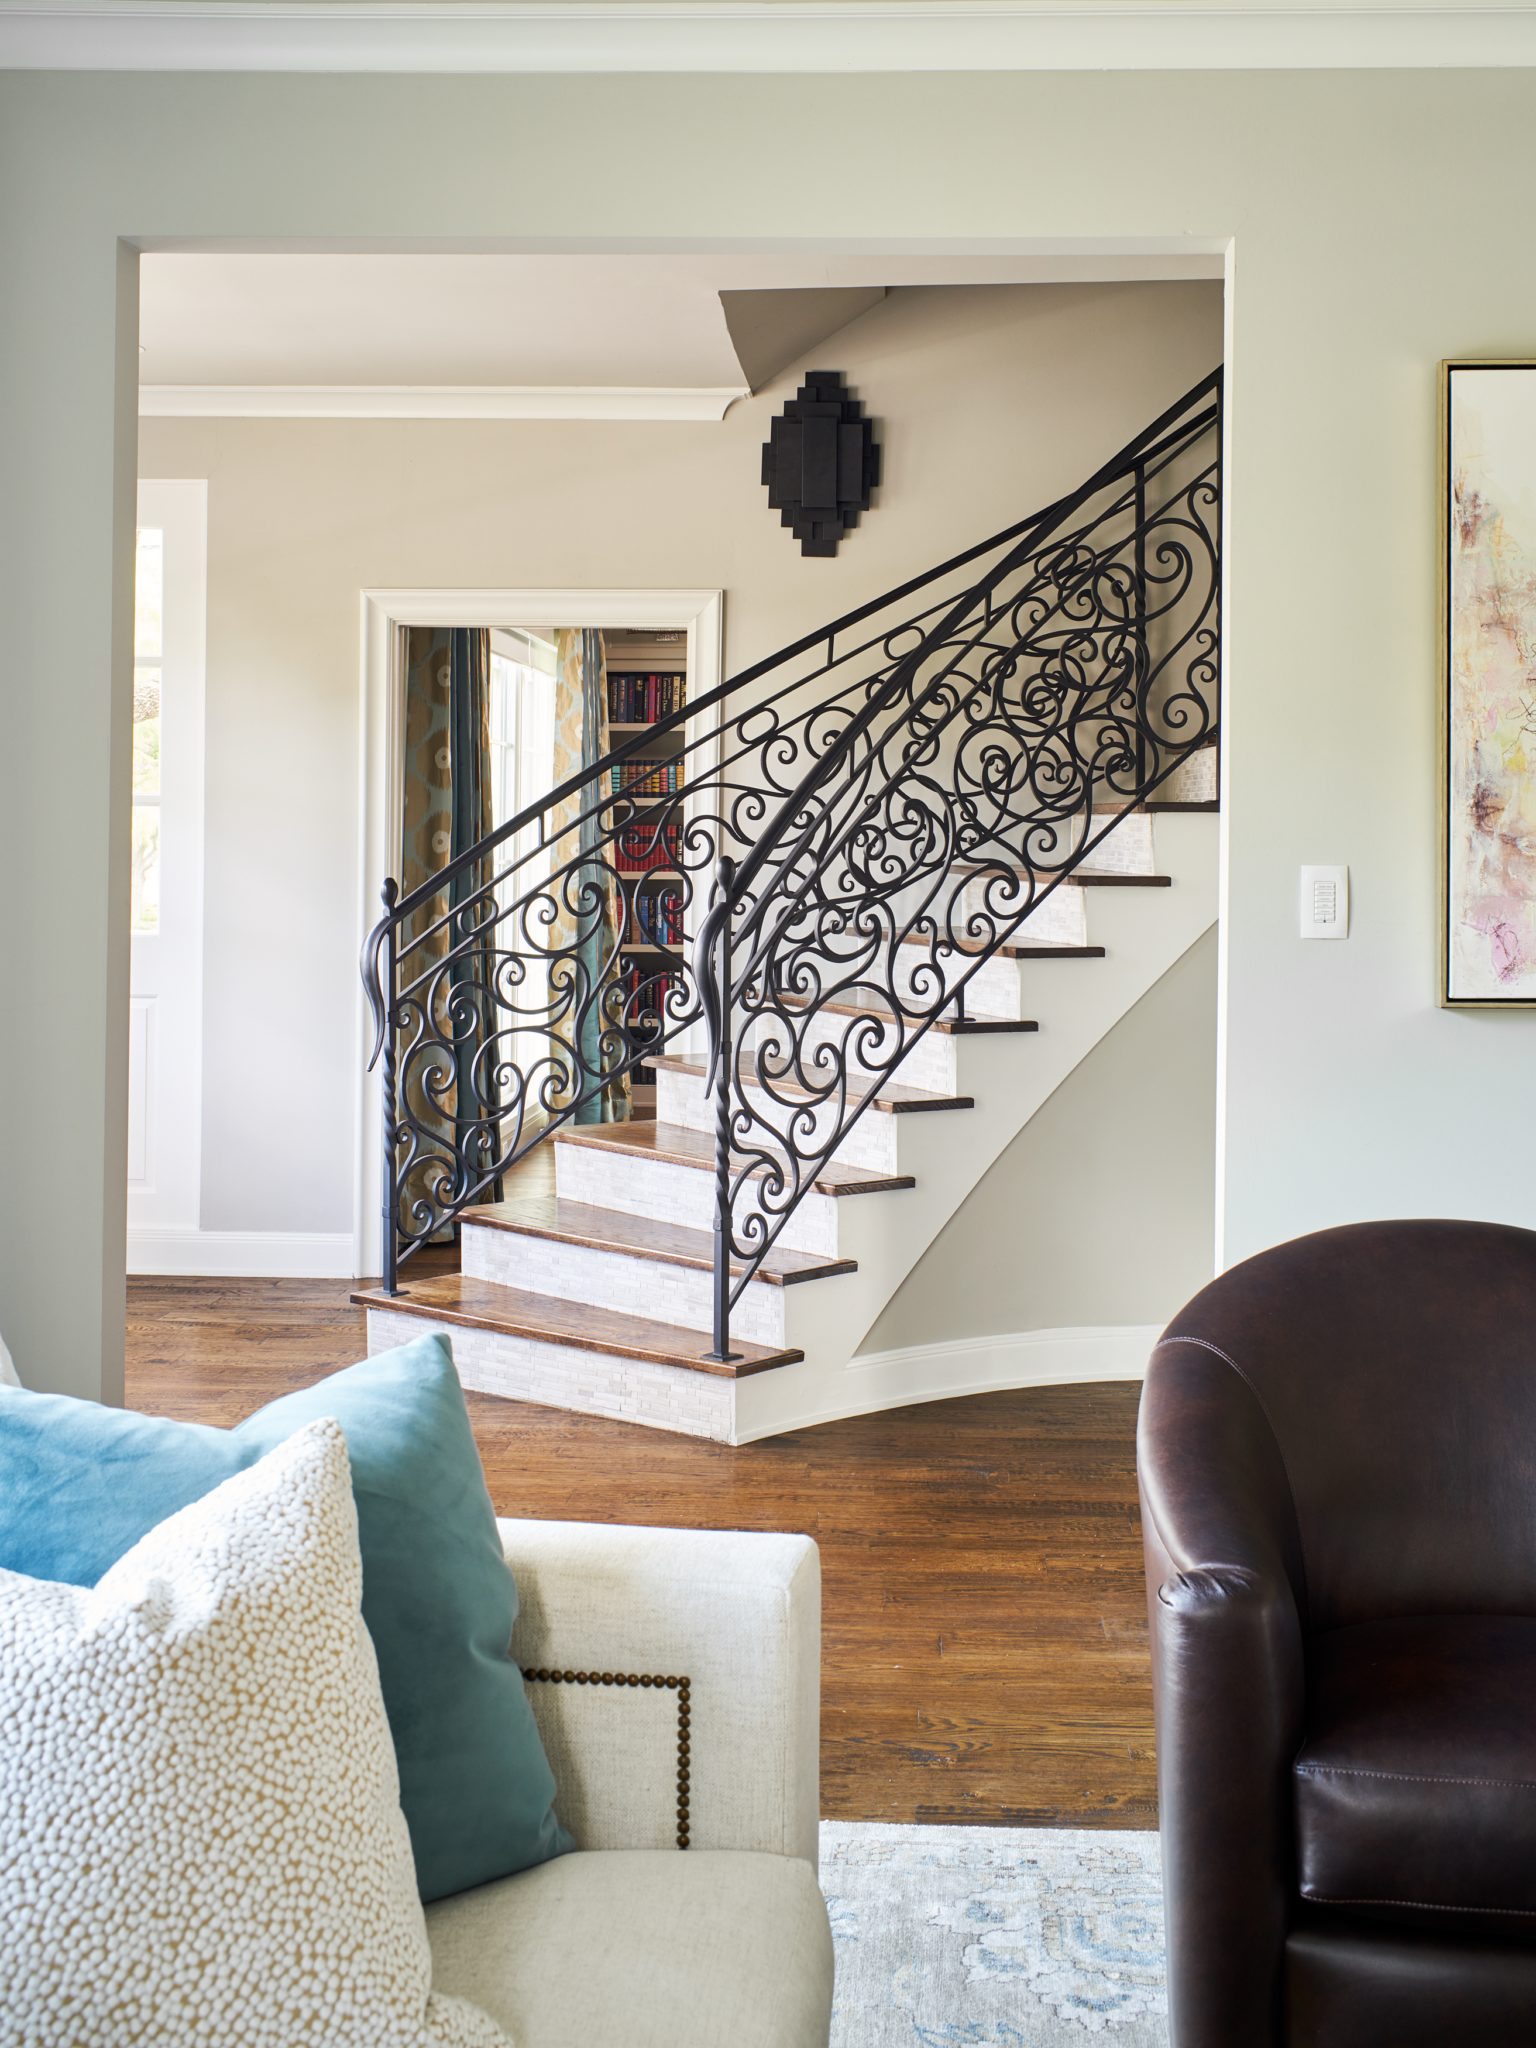 Living room views show custom iron banister work - a piece of art in itself. by Wesley-Wayne Interiors